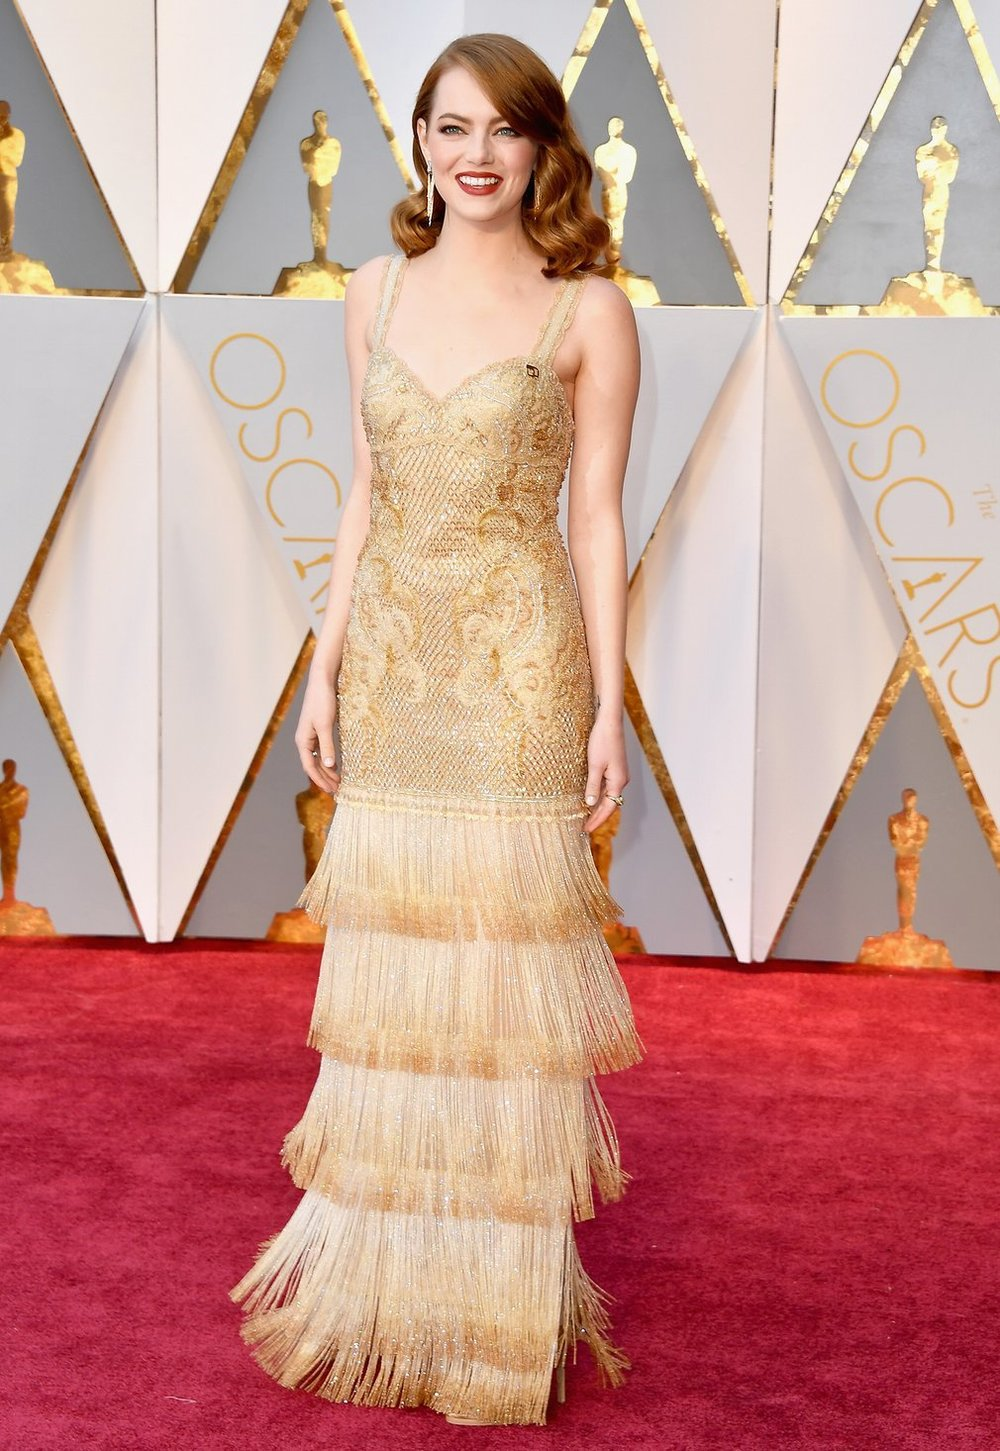 Emma Stone nailed red-carpet dressing, as per usual, in this delightful, golden Givenchy dress.jpg